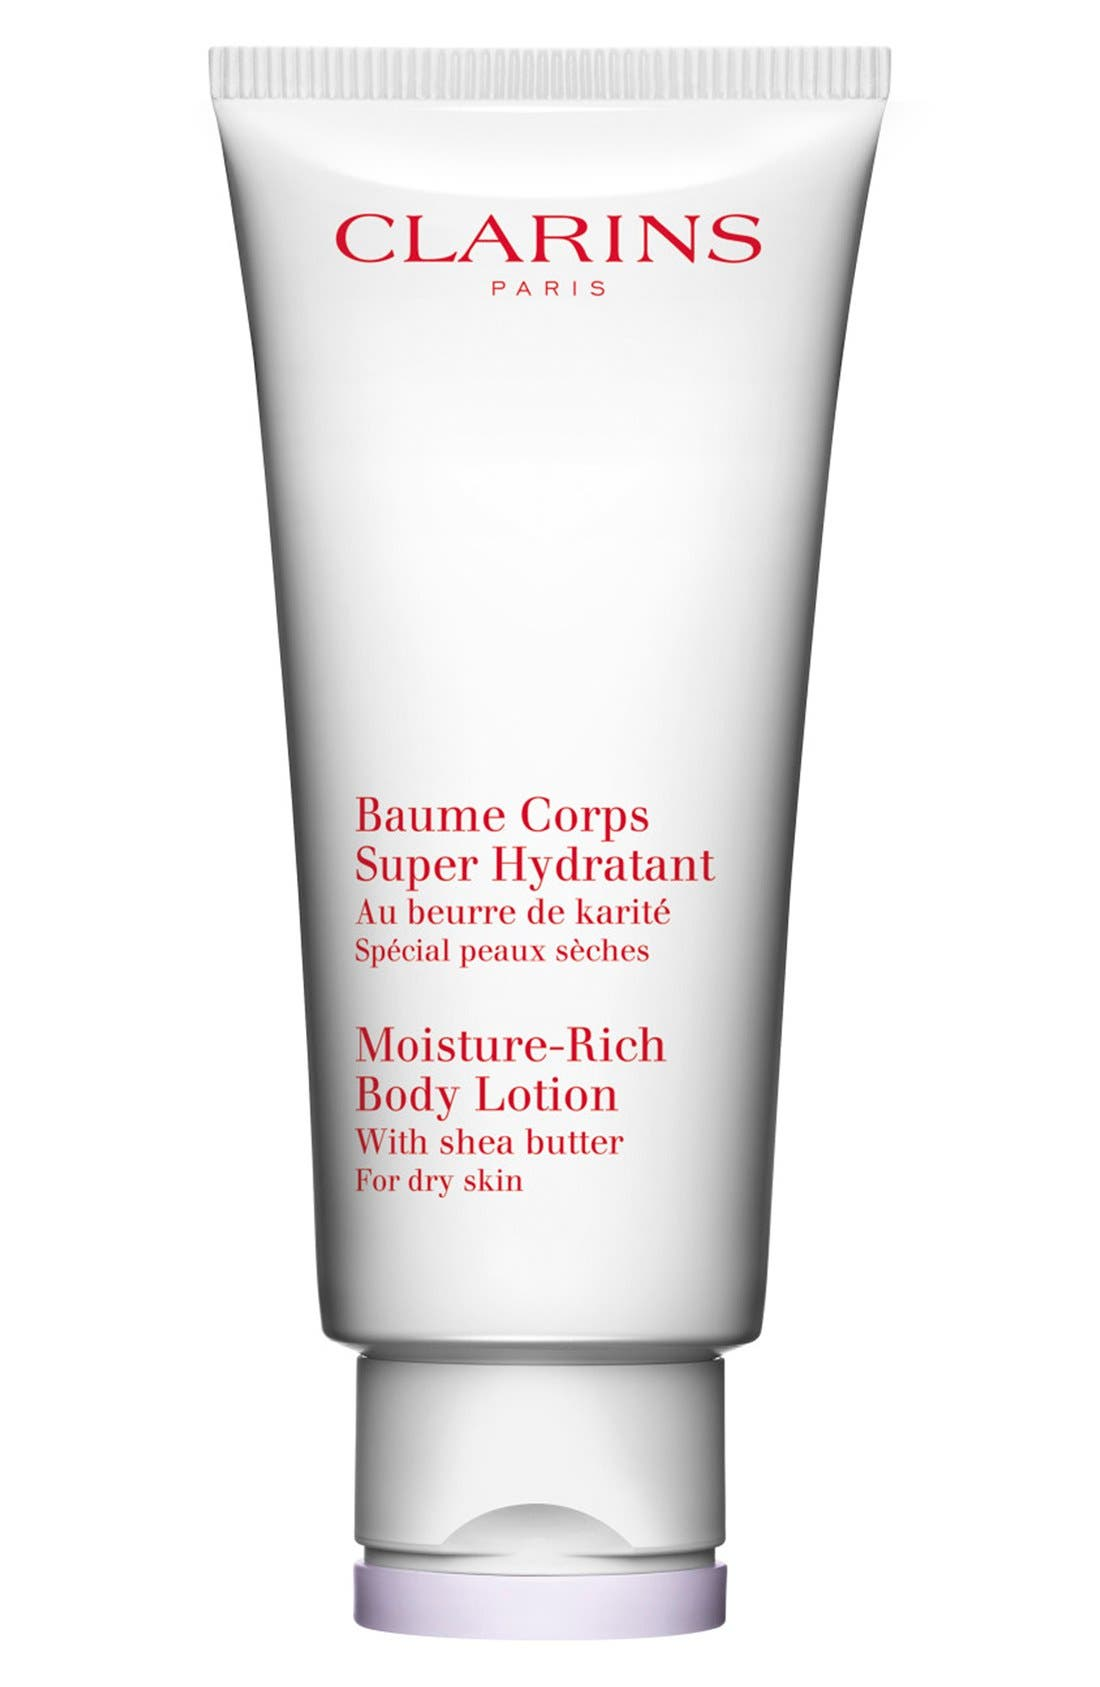 Clarins 'Moisture-Rich' Body Lotion